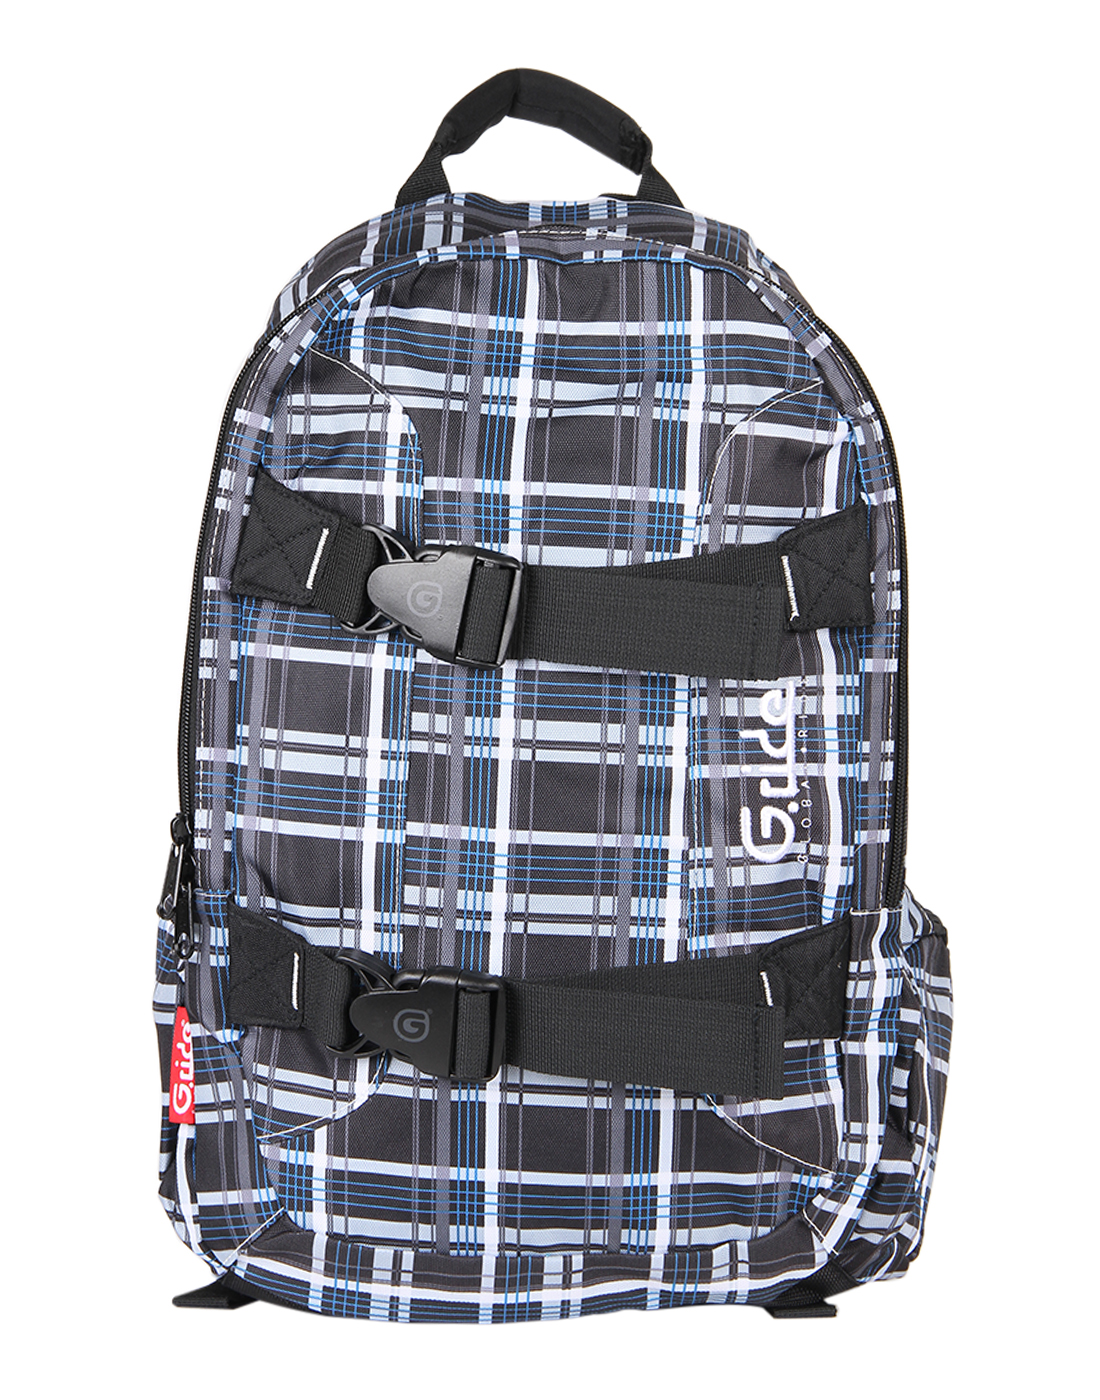 G.ride Casual Wear Striped Bag